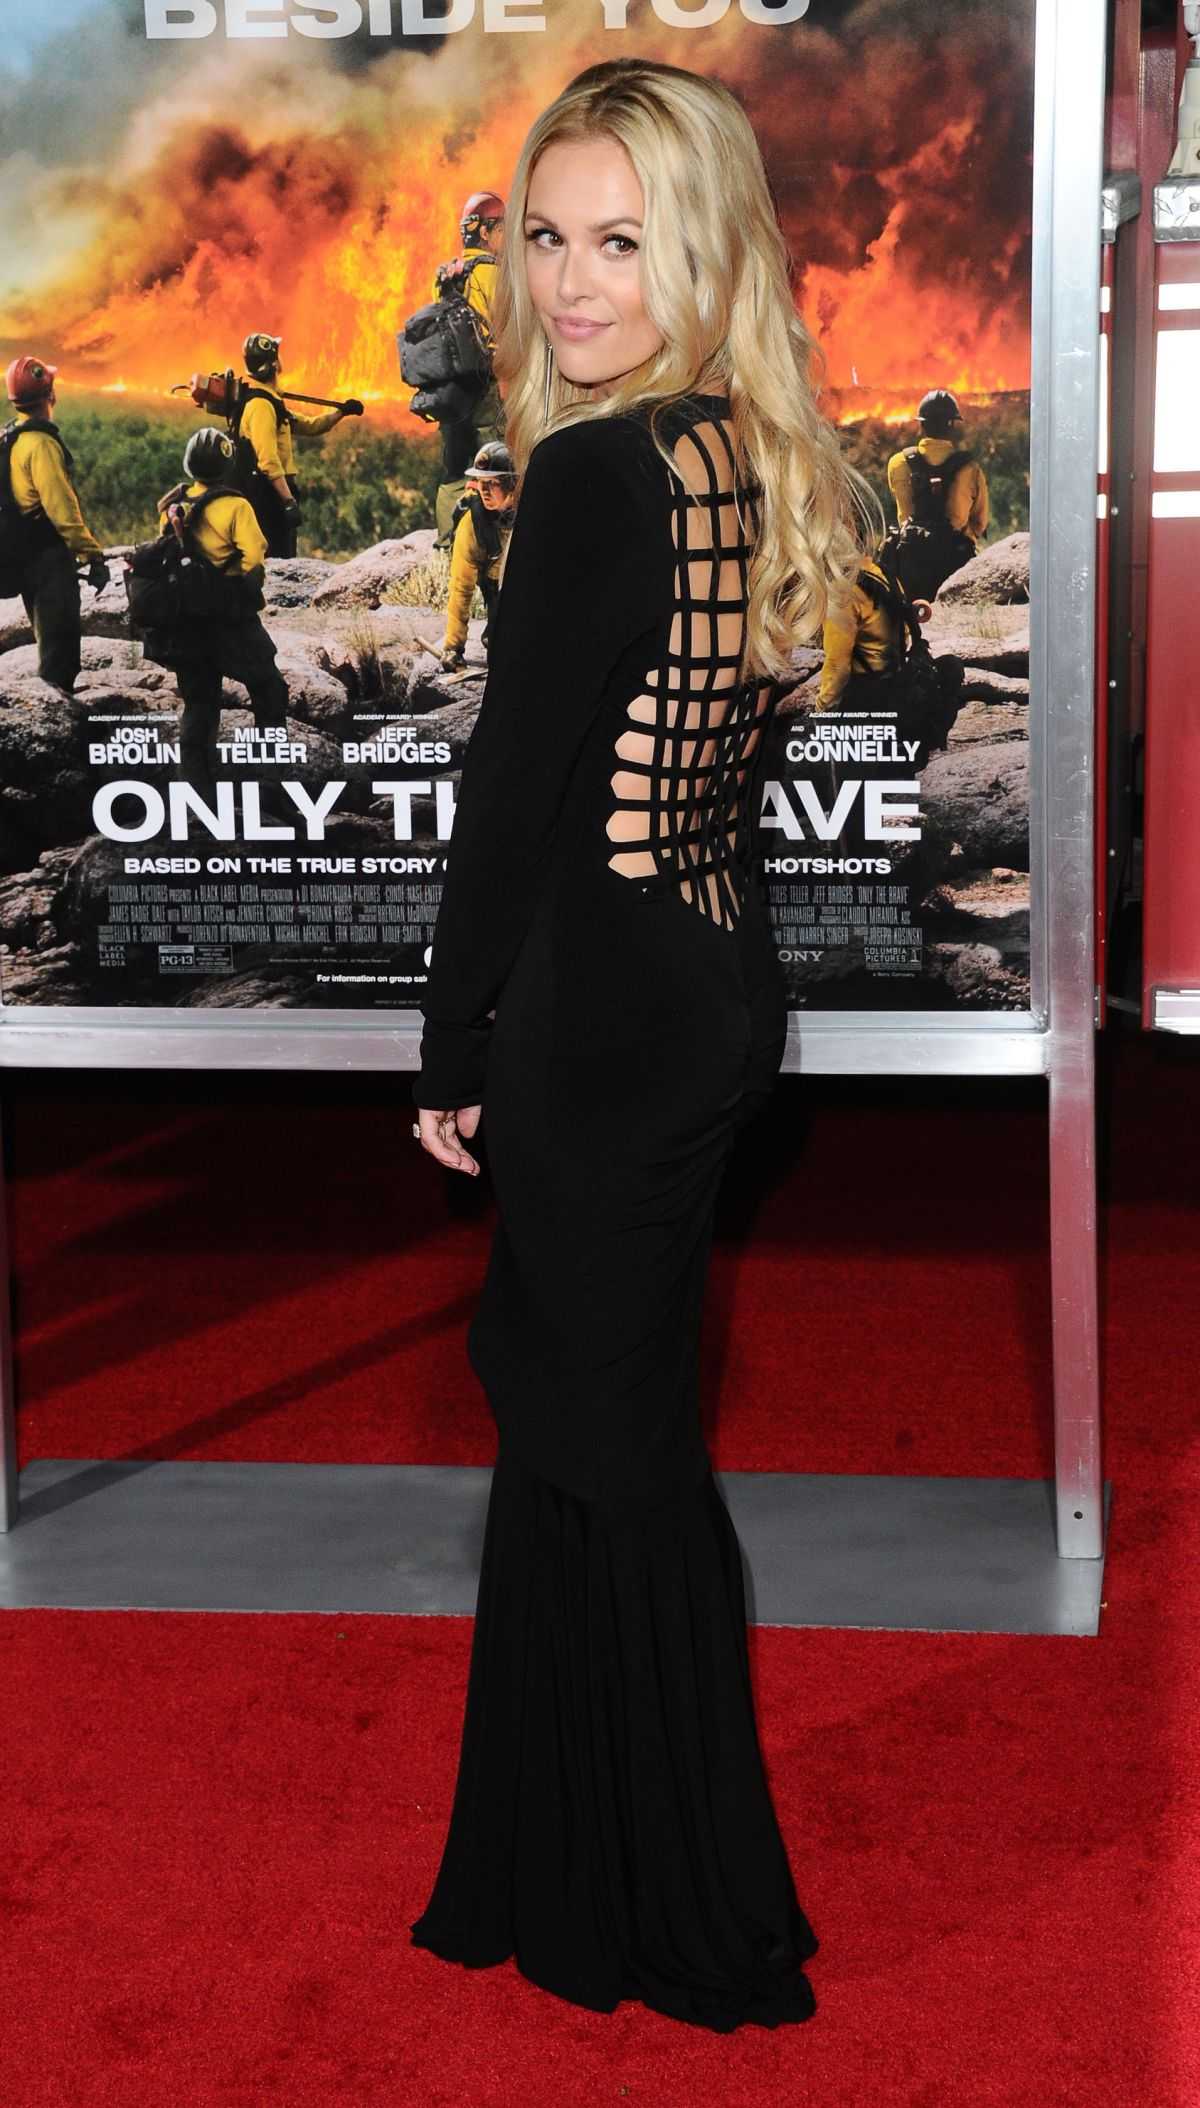 Natalie Hall At 'Only The Brave' film premiere, Los Angeles   natalie-hall-at-only-the-brave-film-premiere-los-angeles-18